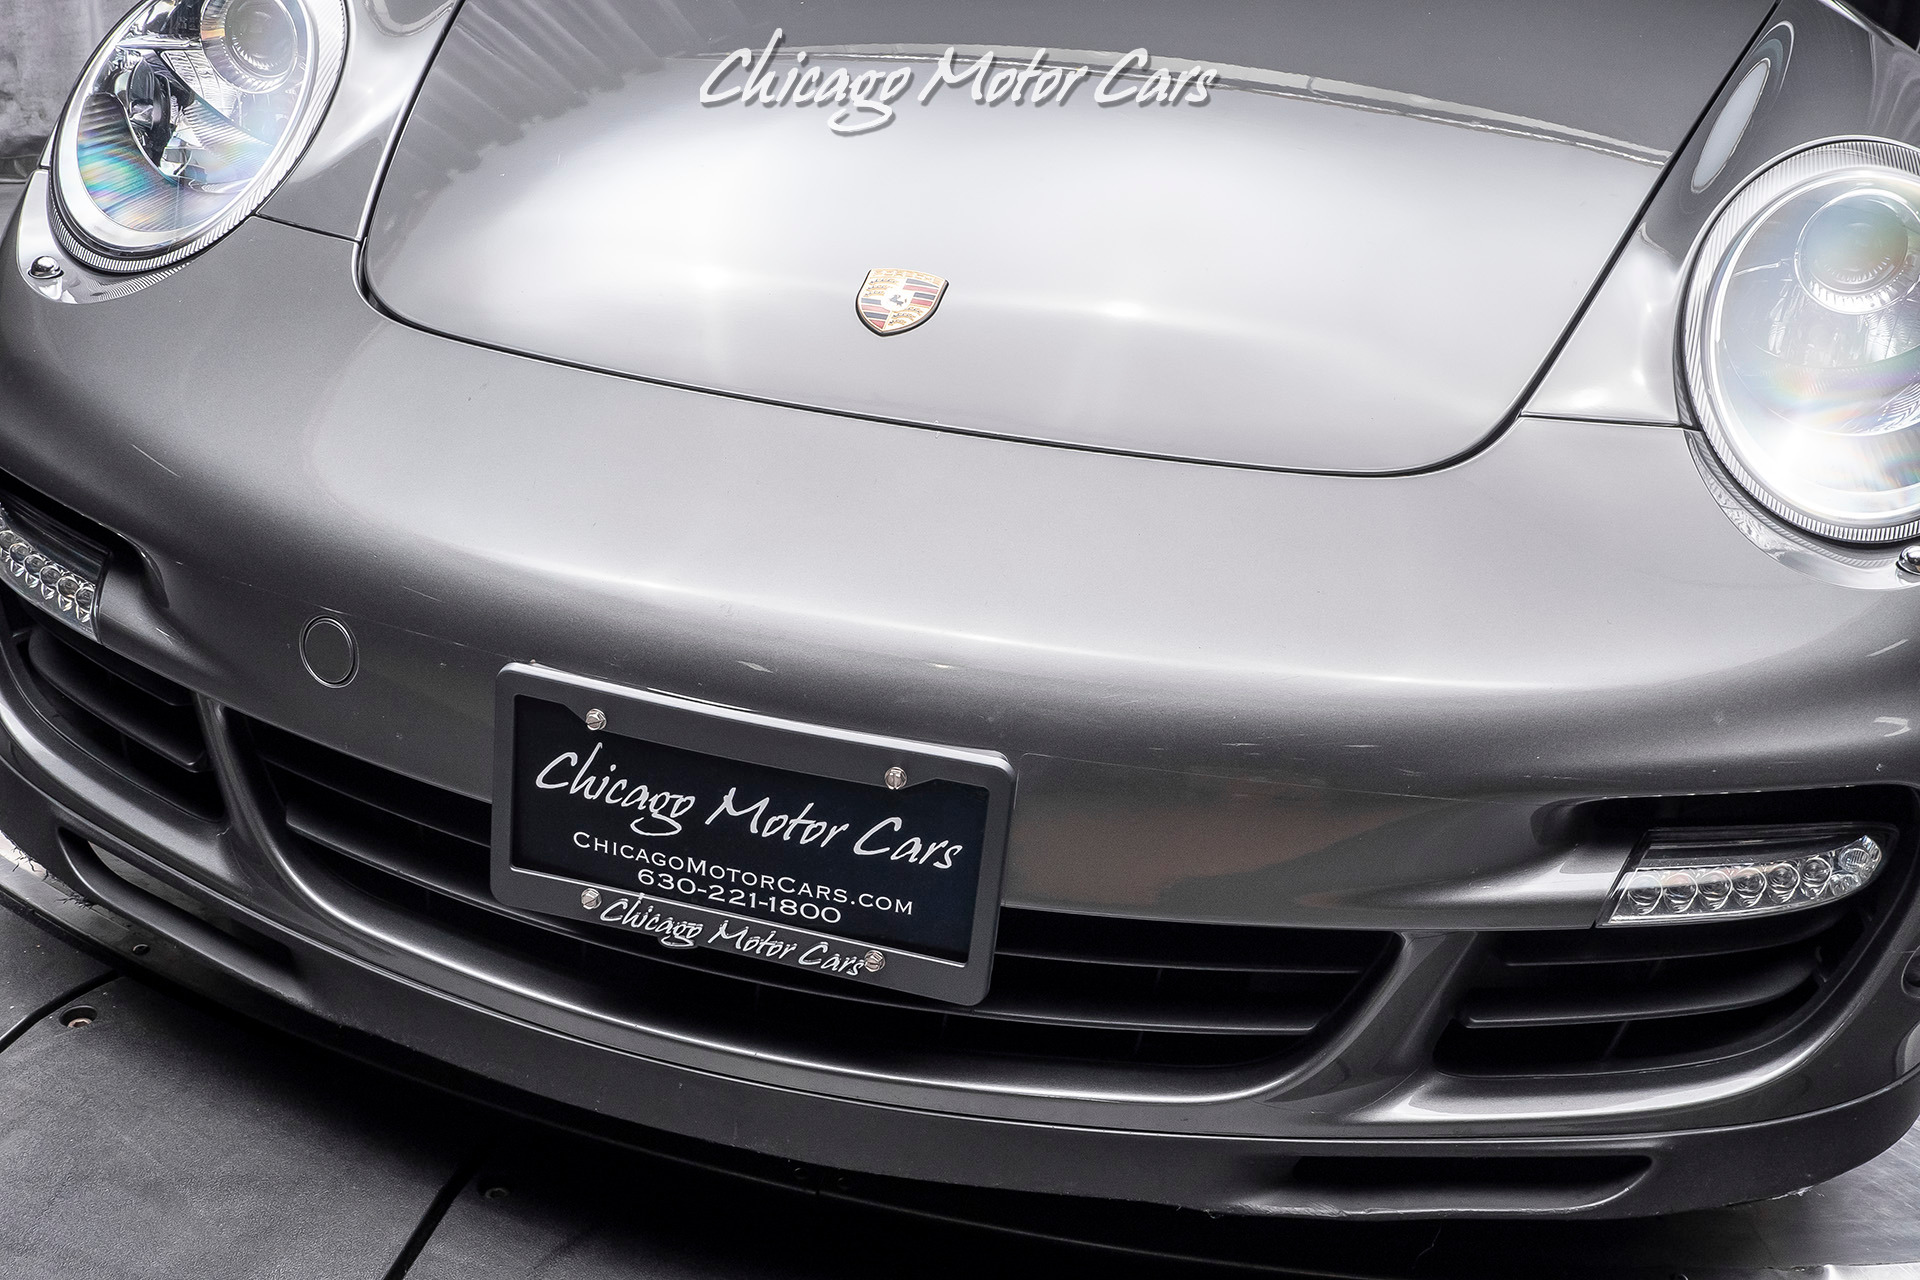 Used-2008-Porsche-911-Turbo-6-Speed-Manual-PCCBs-Serviced-Loaded-Perfect